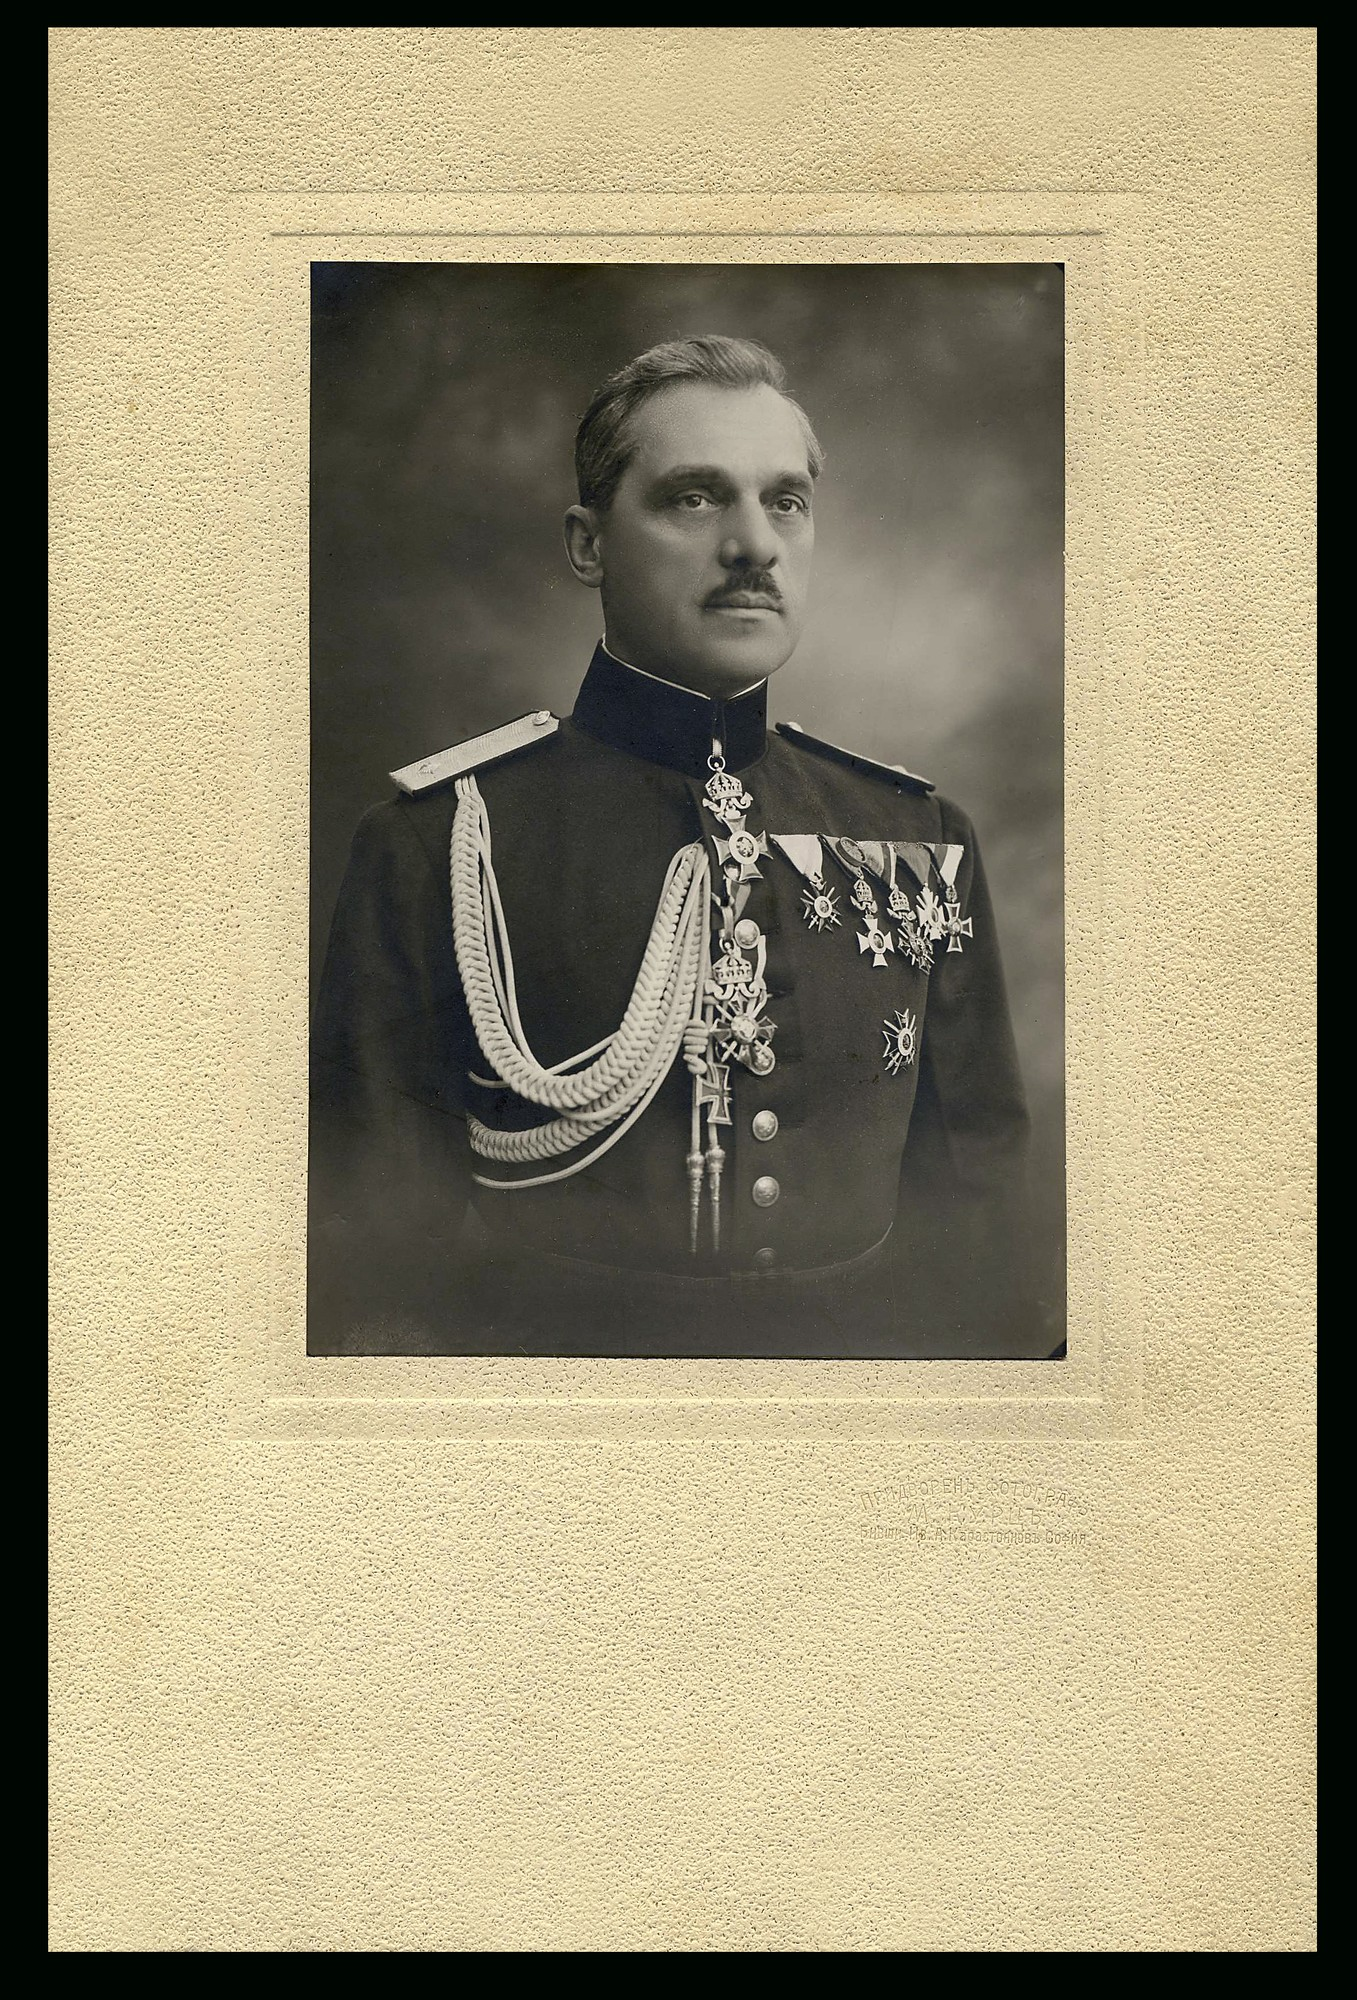 Portrait of General Vasilev, © Personal Archive of Svetla Bogdanova